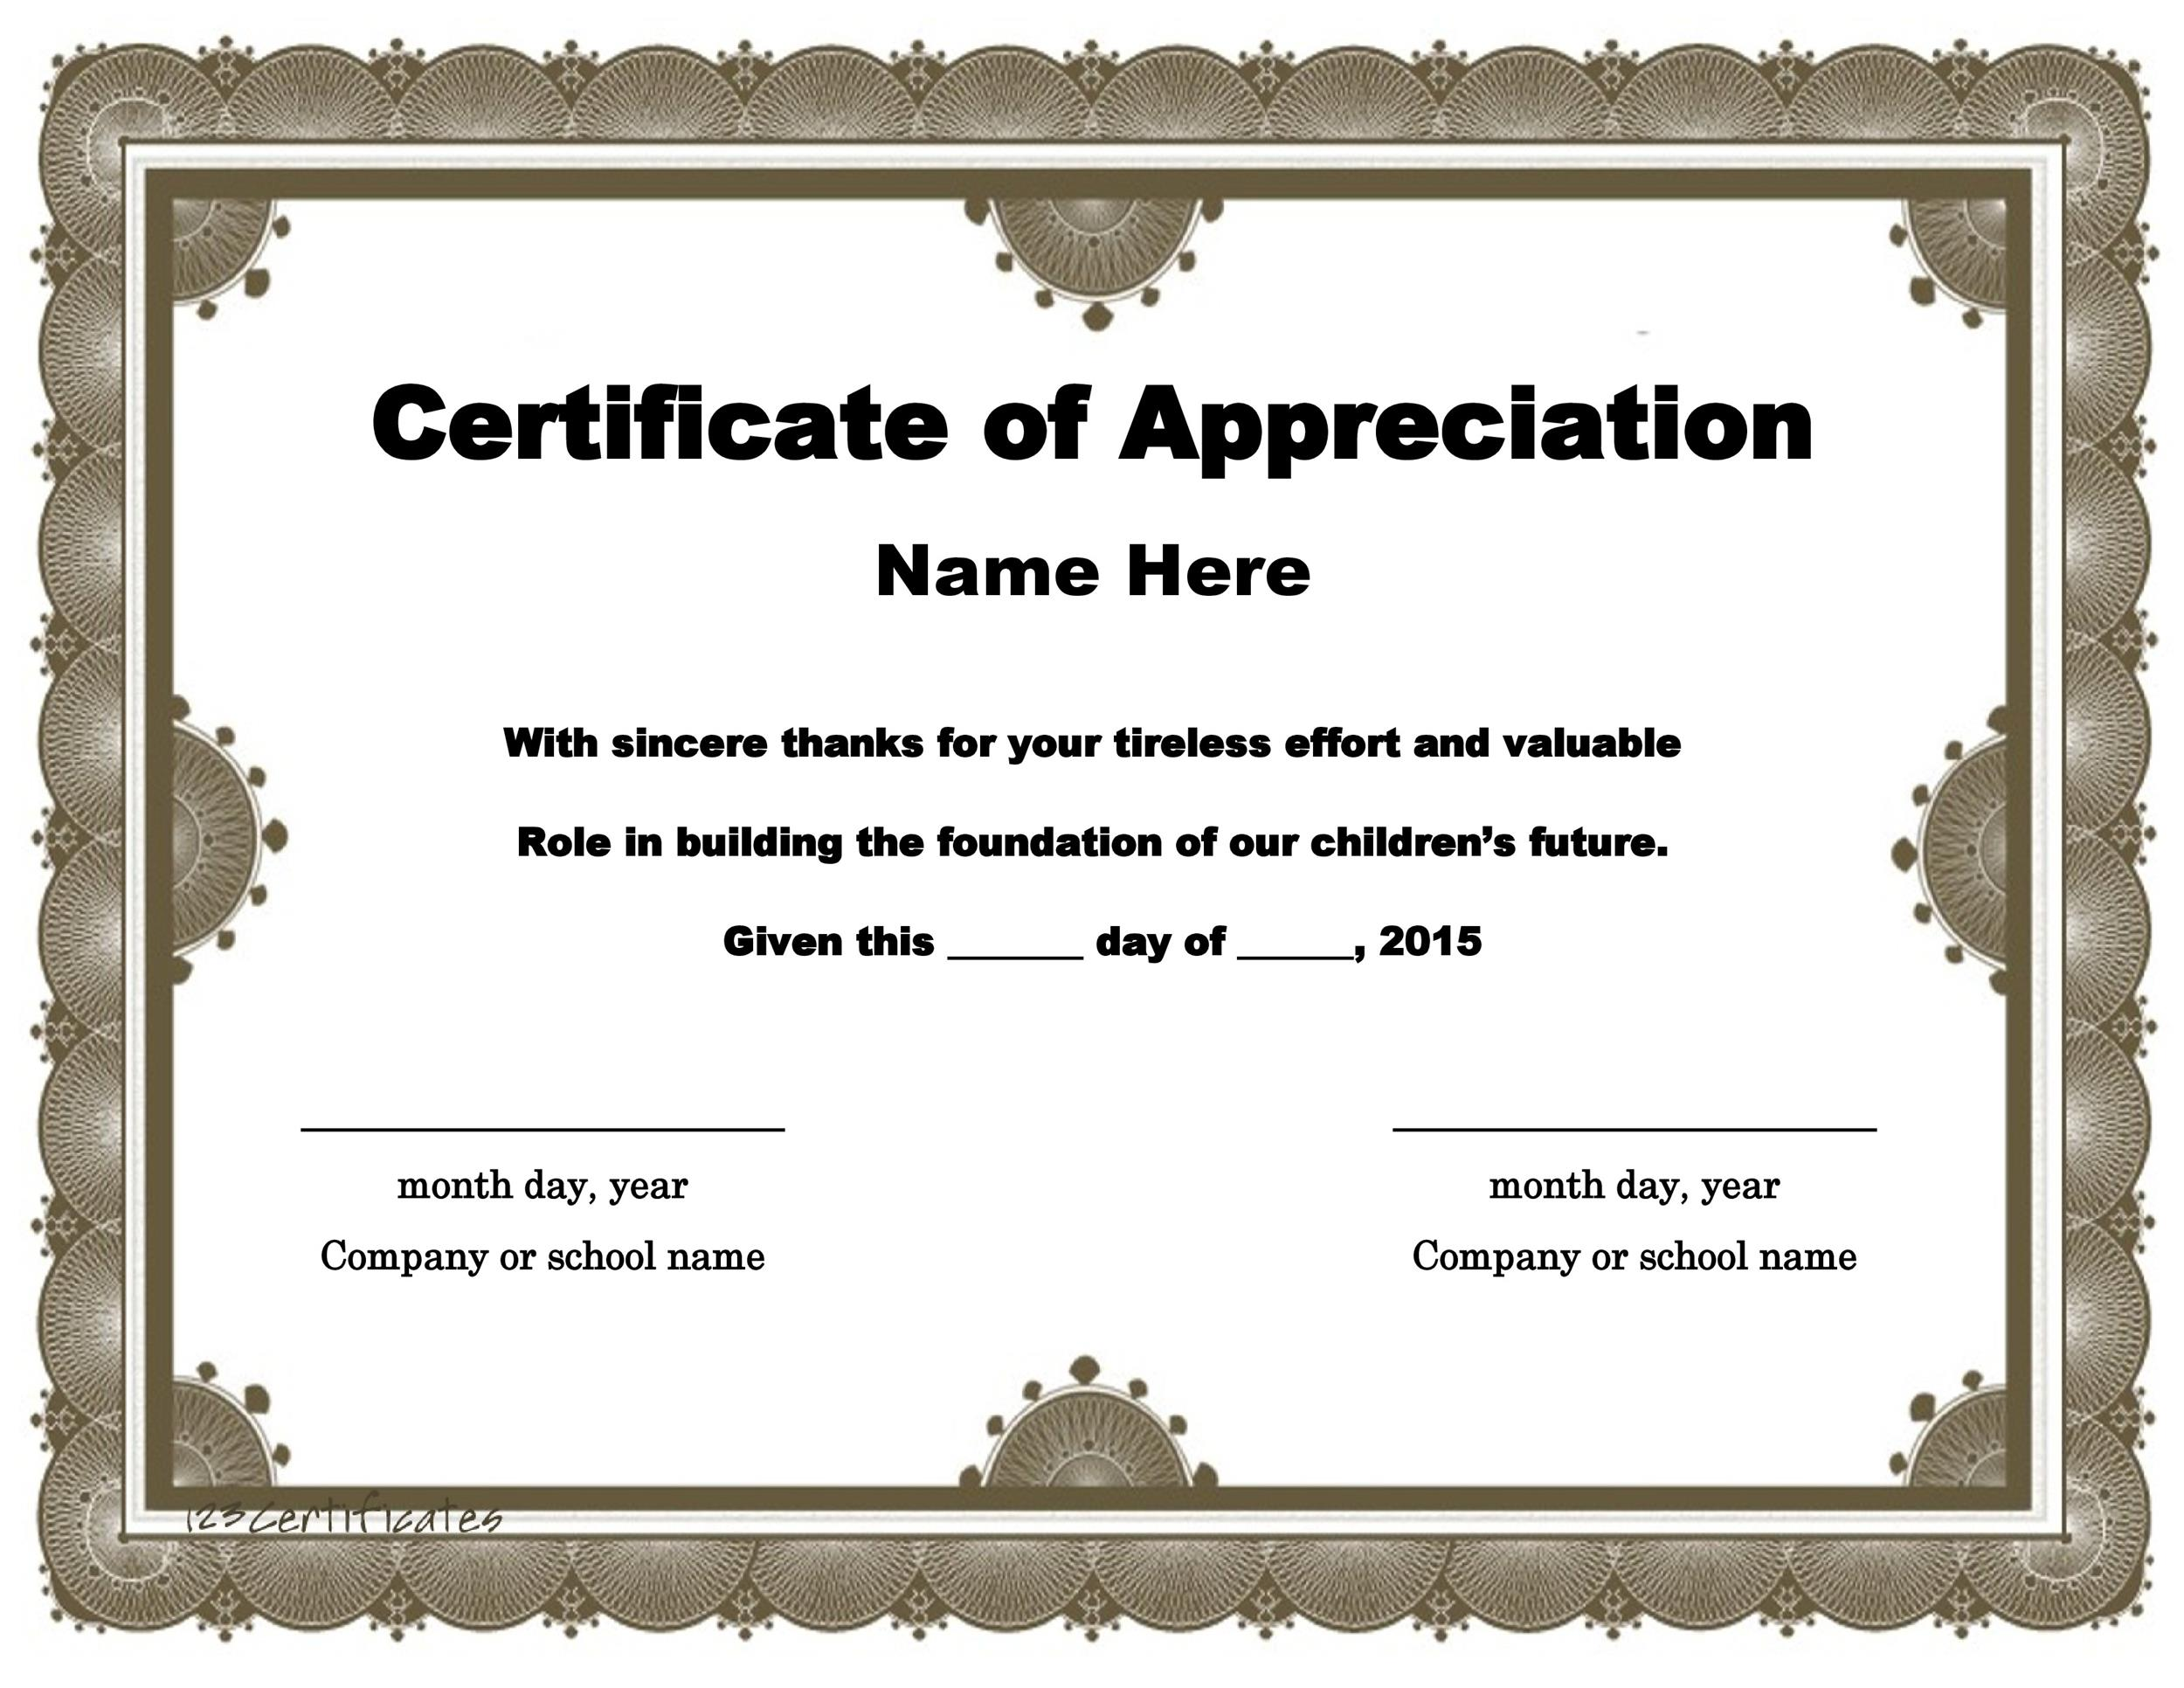 30 free certificate of appreciation templates and letters printable certificate of appreciation 03 yadclub Choice Image